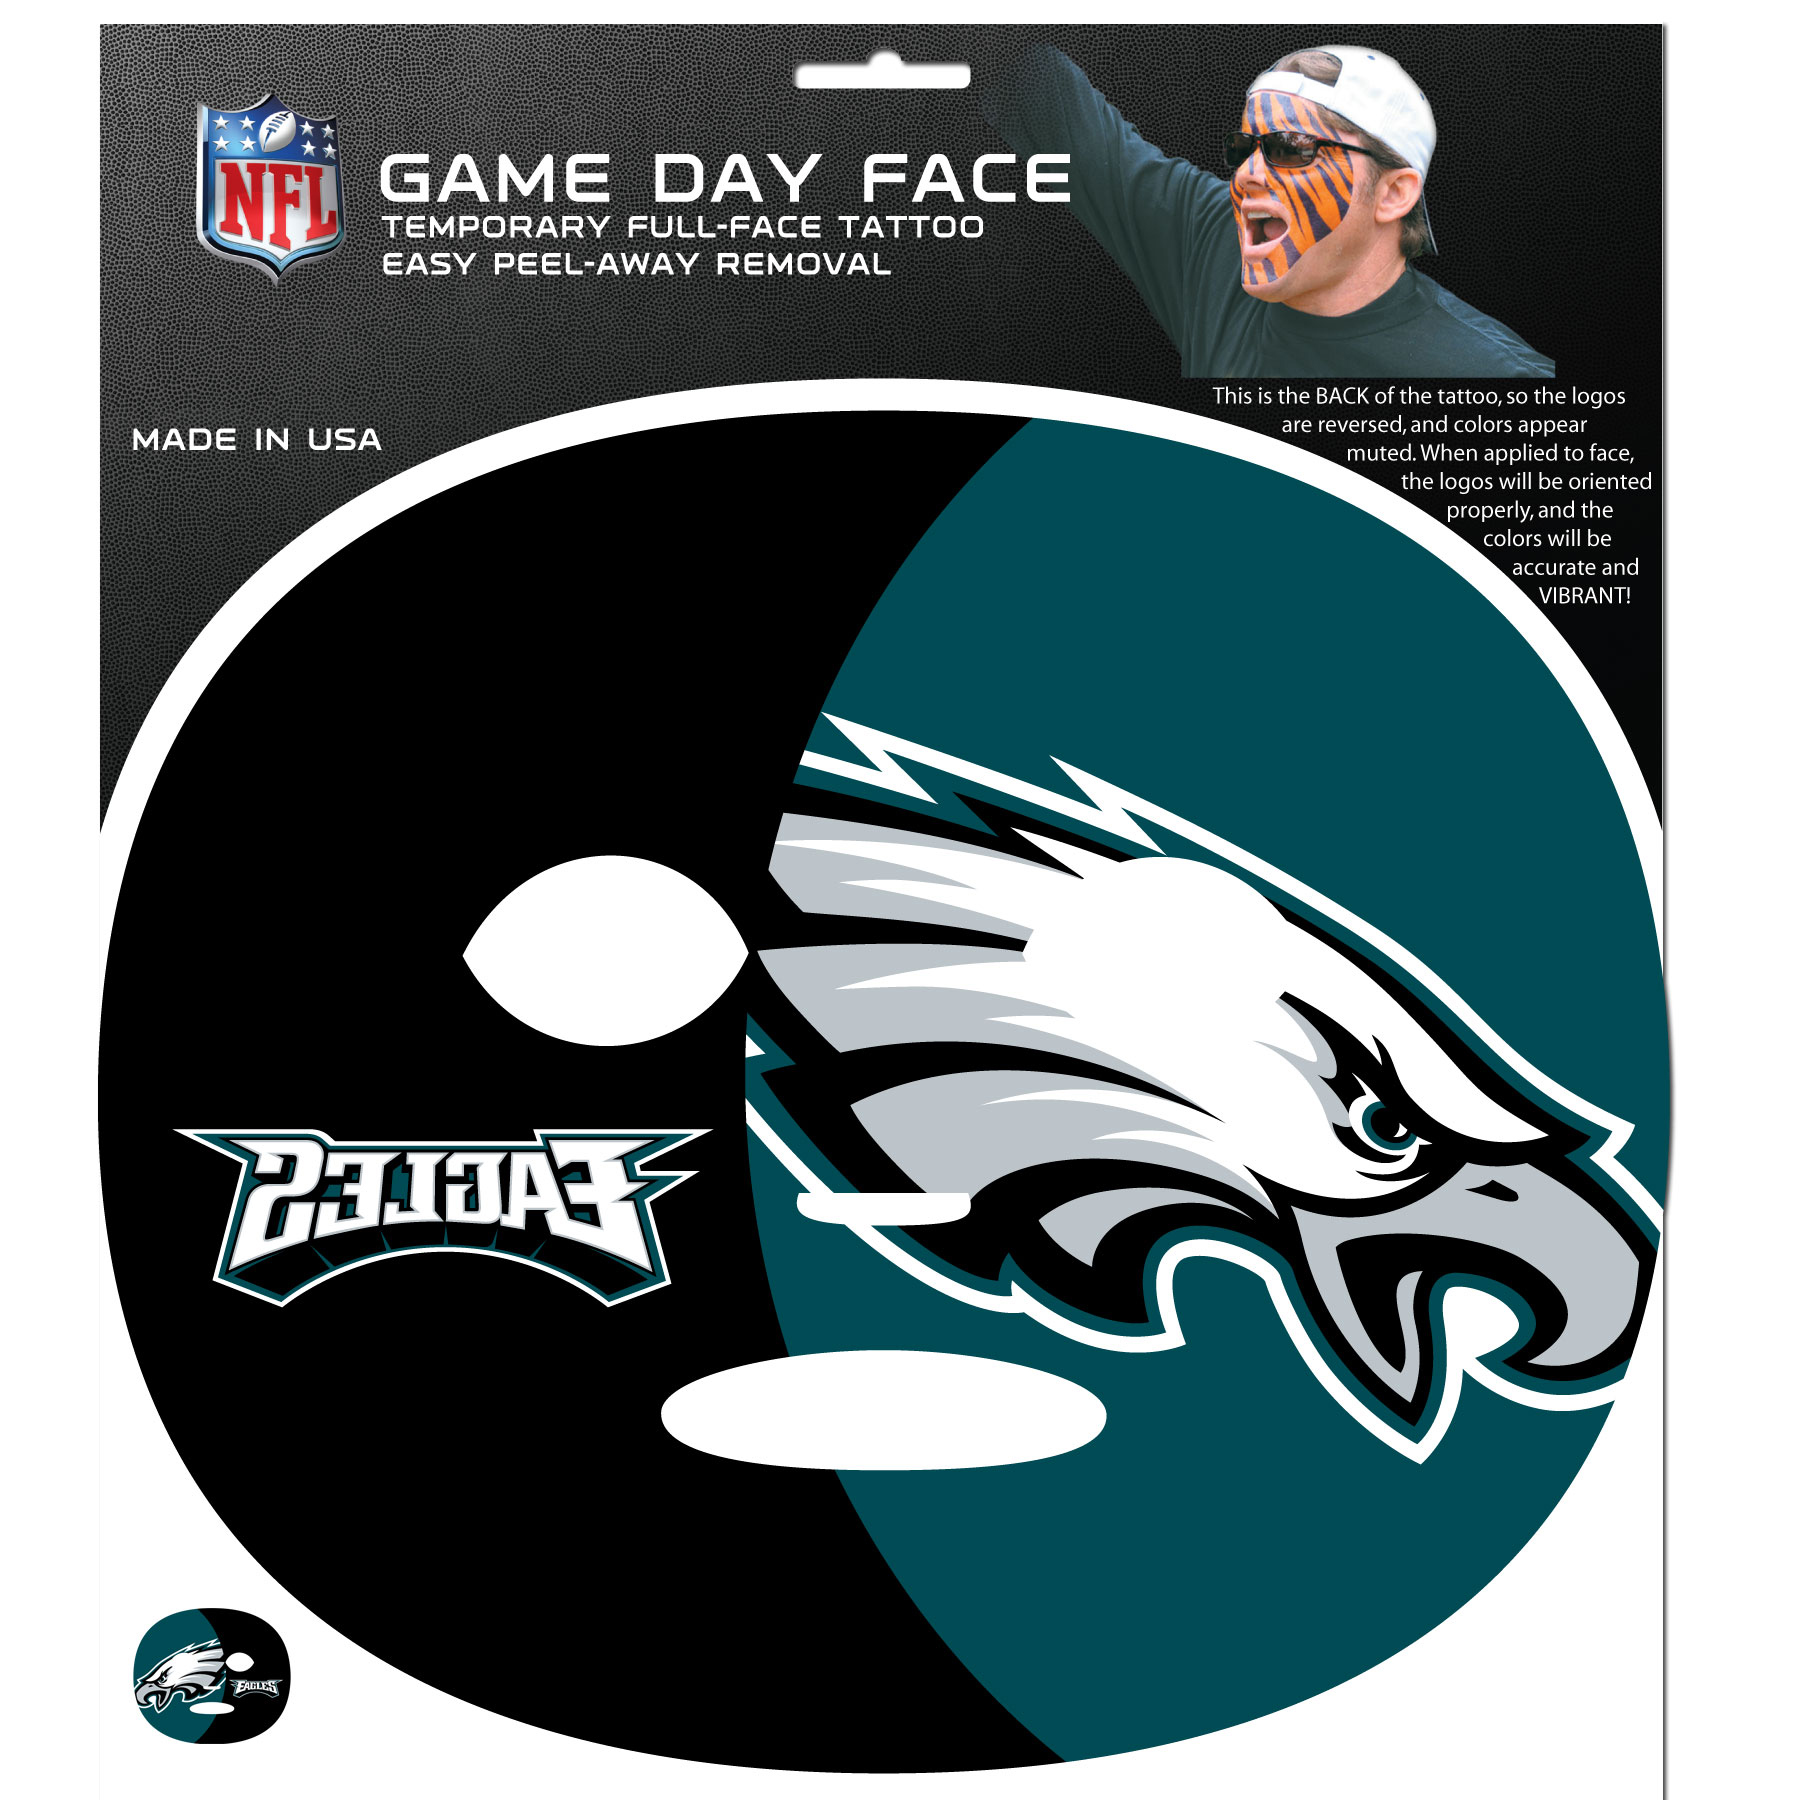 Philadelphia Eagles Set of 8 Game Day Faces - No better way to show your team pride than by painting your face. Siskiyou's Game Day Face Temporary Tattoo isn't your typical face paint. It is a water based application that doesn't smudge, smear or sweat off while you're wearing it and easily peels off after you're done celebrating your team's big Win! The temporary tattoo is large enough to trim down to fit your face. Our Game Day Face Temporary Tattoo's are fun for fans of all ages. You may have seen our product before, these are the same Temporary Face Tattoos as pitched on ABC's Shark Tank.